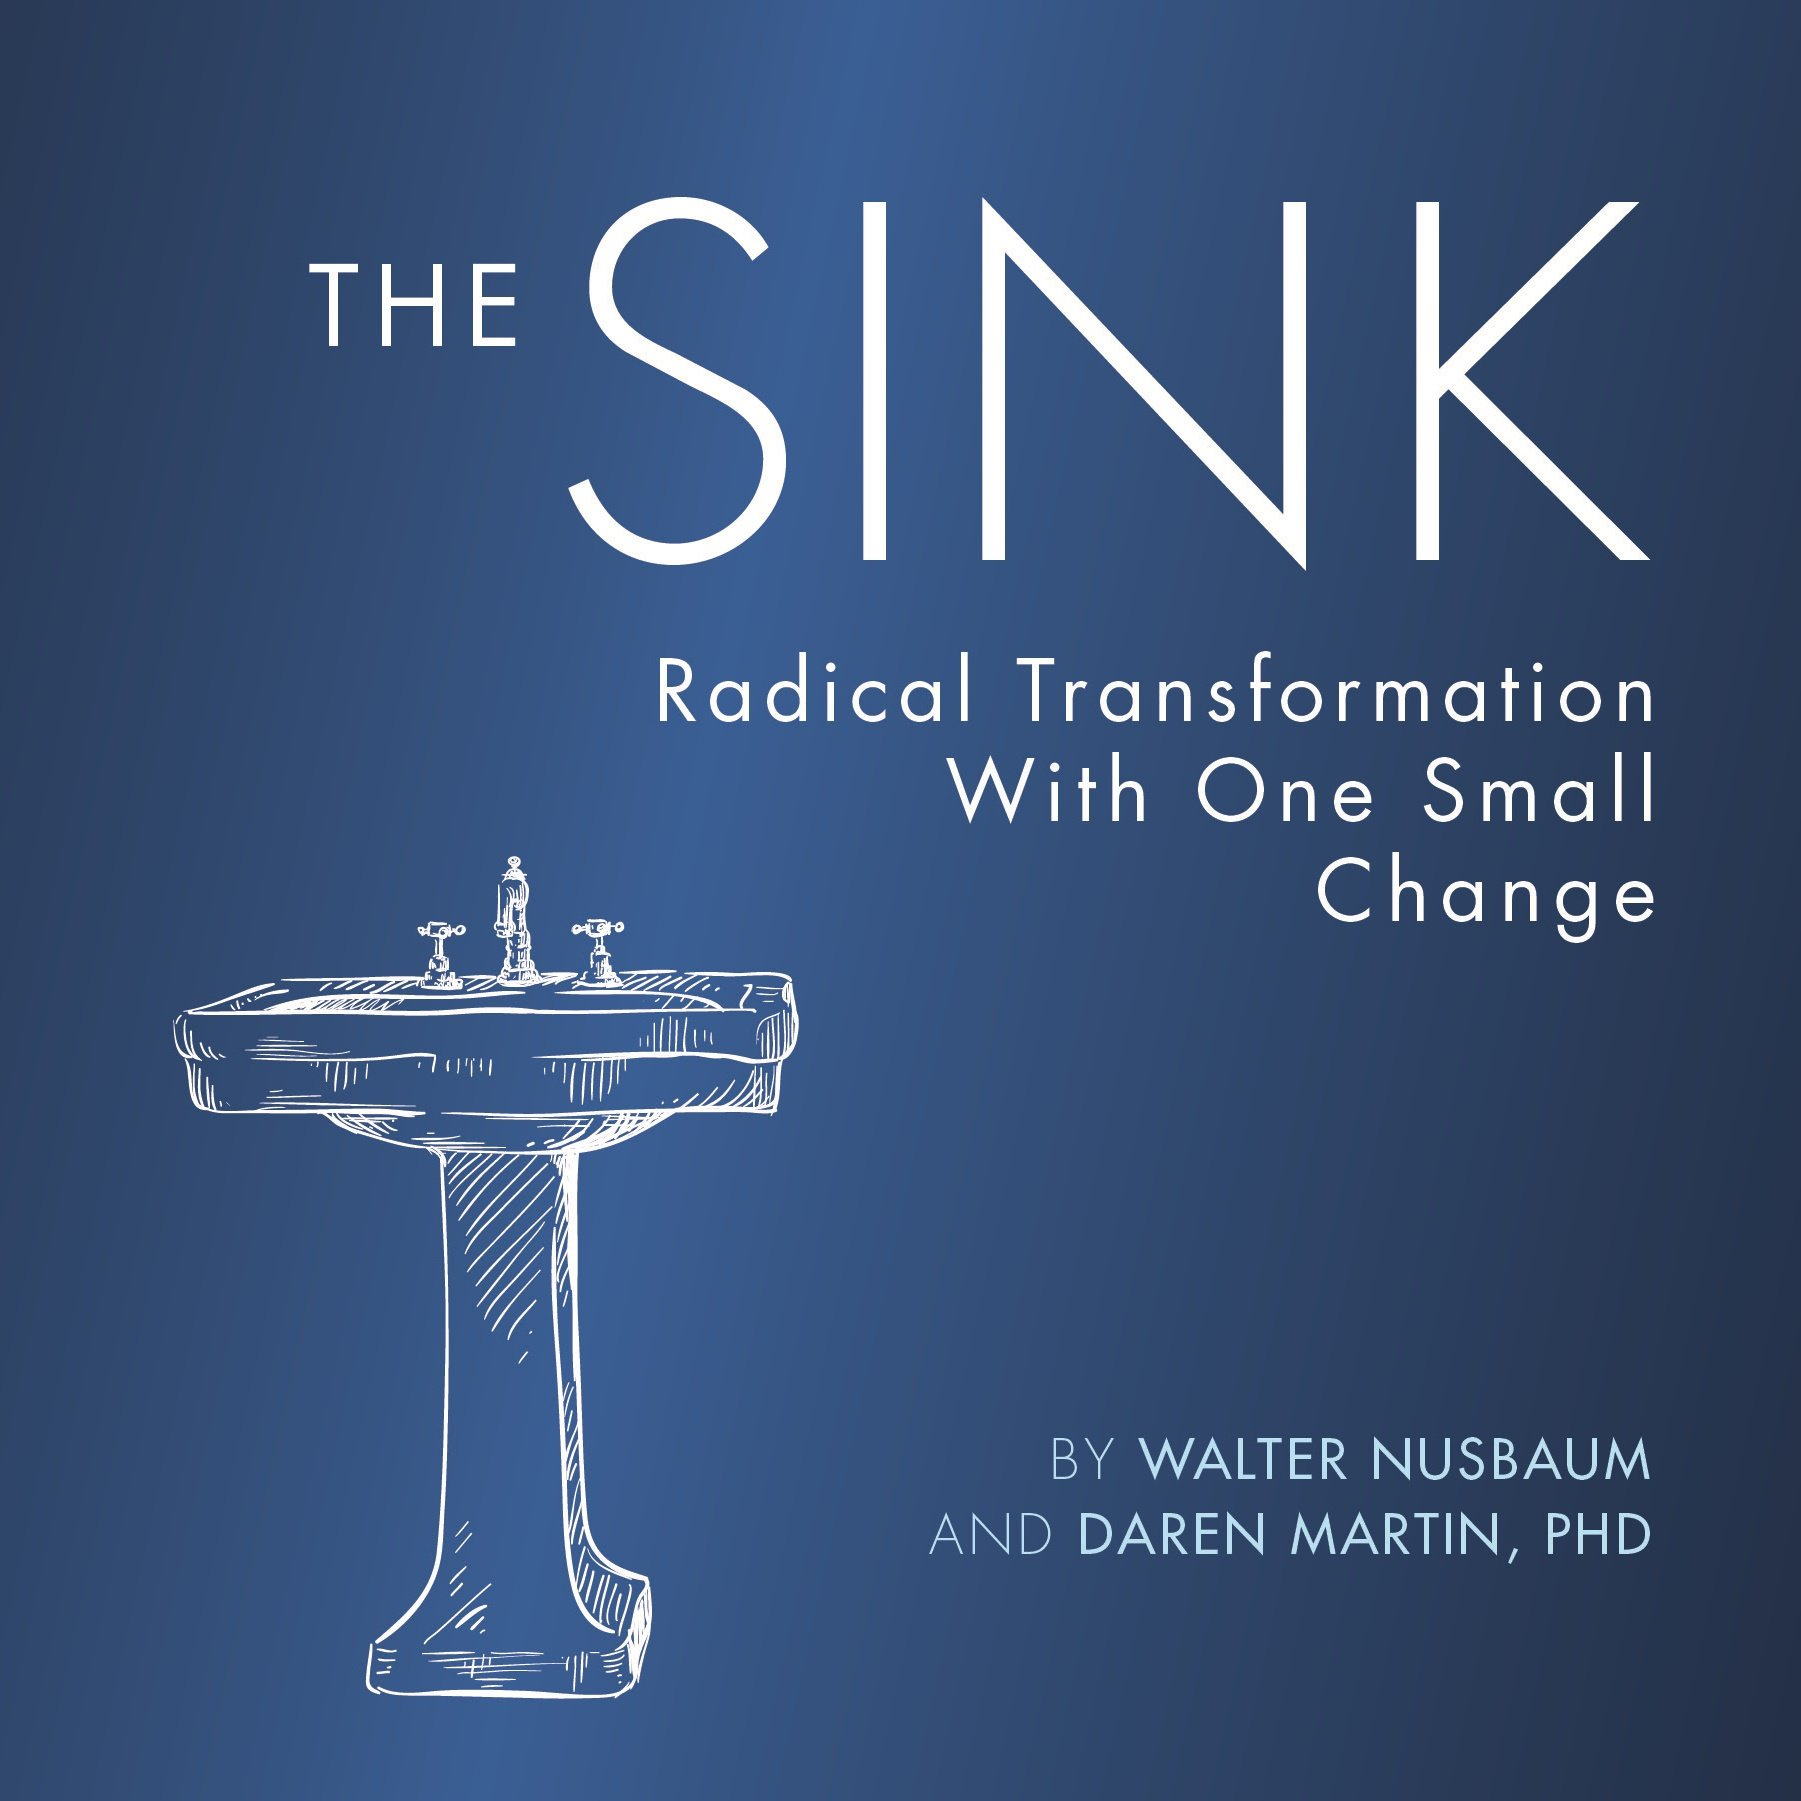 The Sink: Radical Transformation with One Small Change